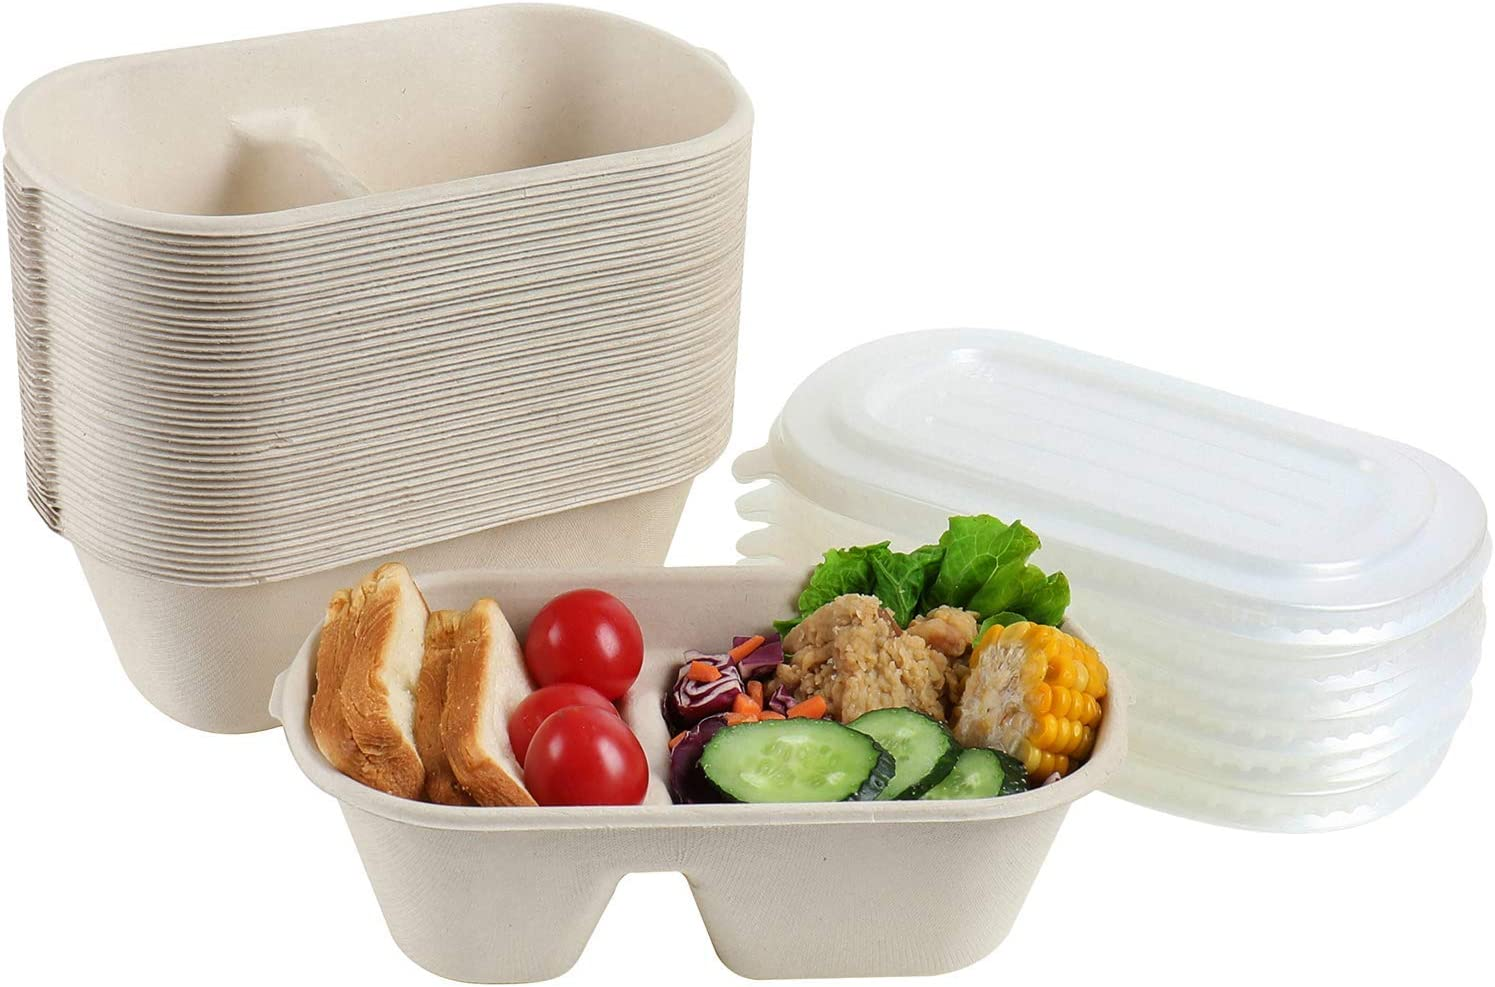 JAYEEY 32OZ Disposable bowls WITH PP LIDS, 2 compartment Compostable Fiber Food Container, Food Storage, Biodegradable Bagasse Microwave Safe 50 PACK